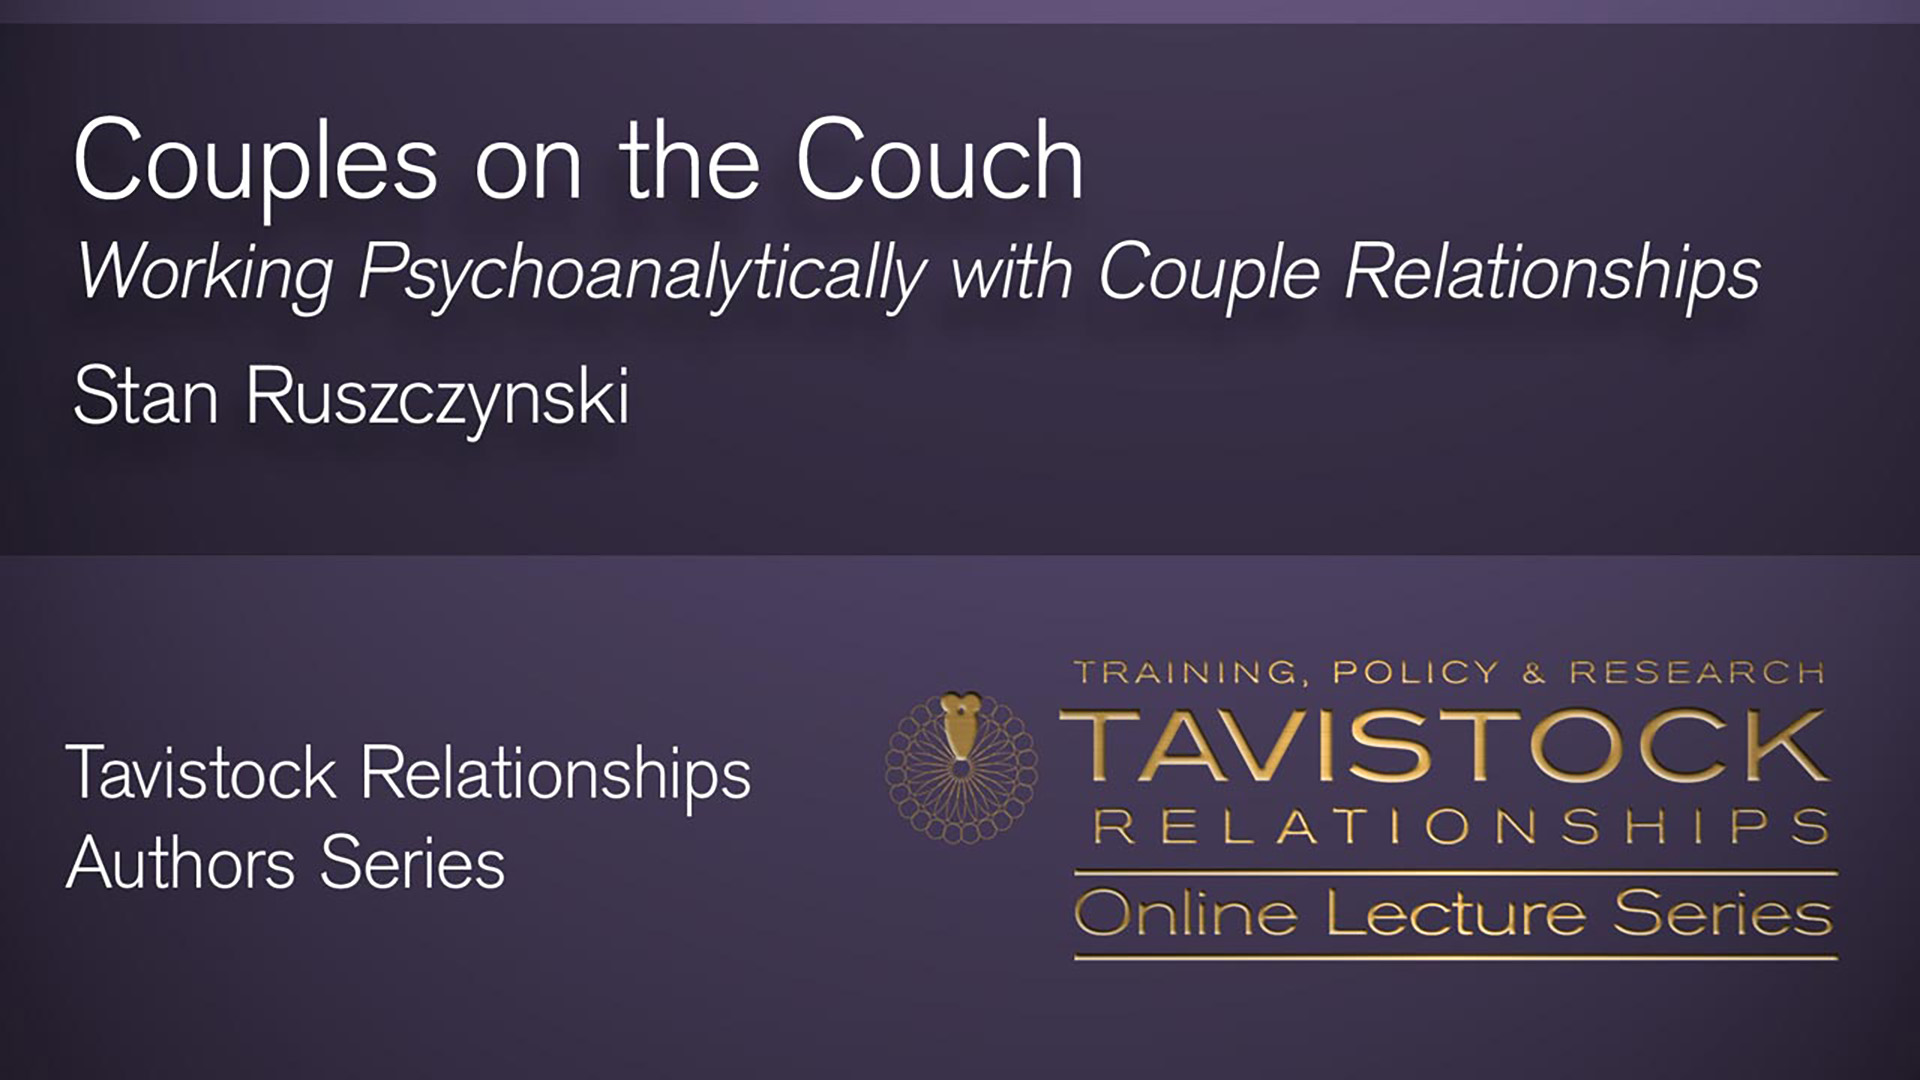 Couples on the Couch Video